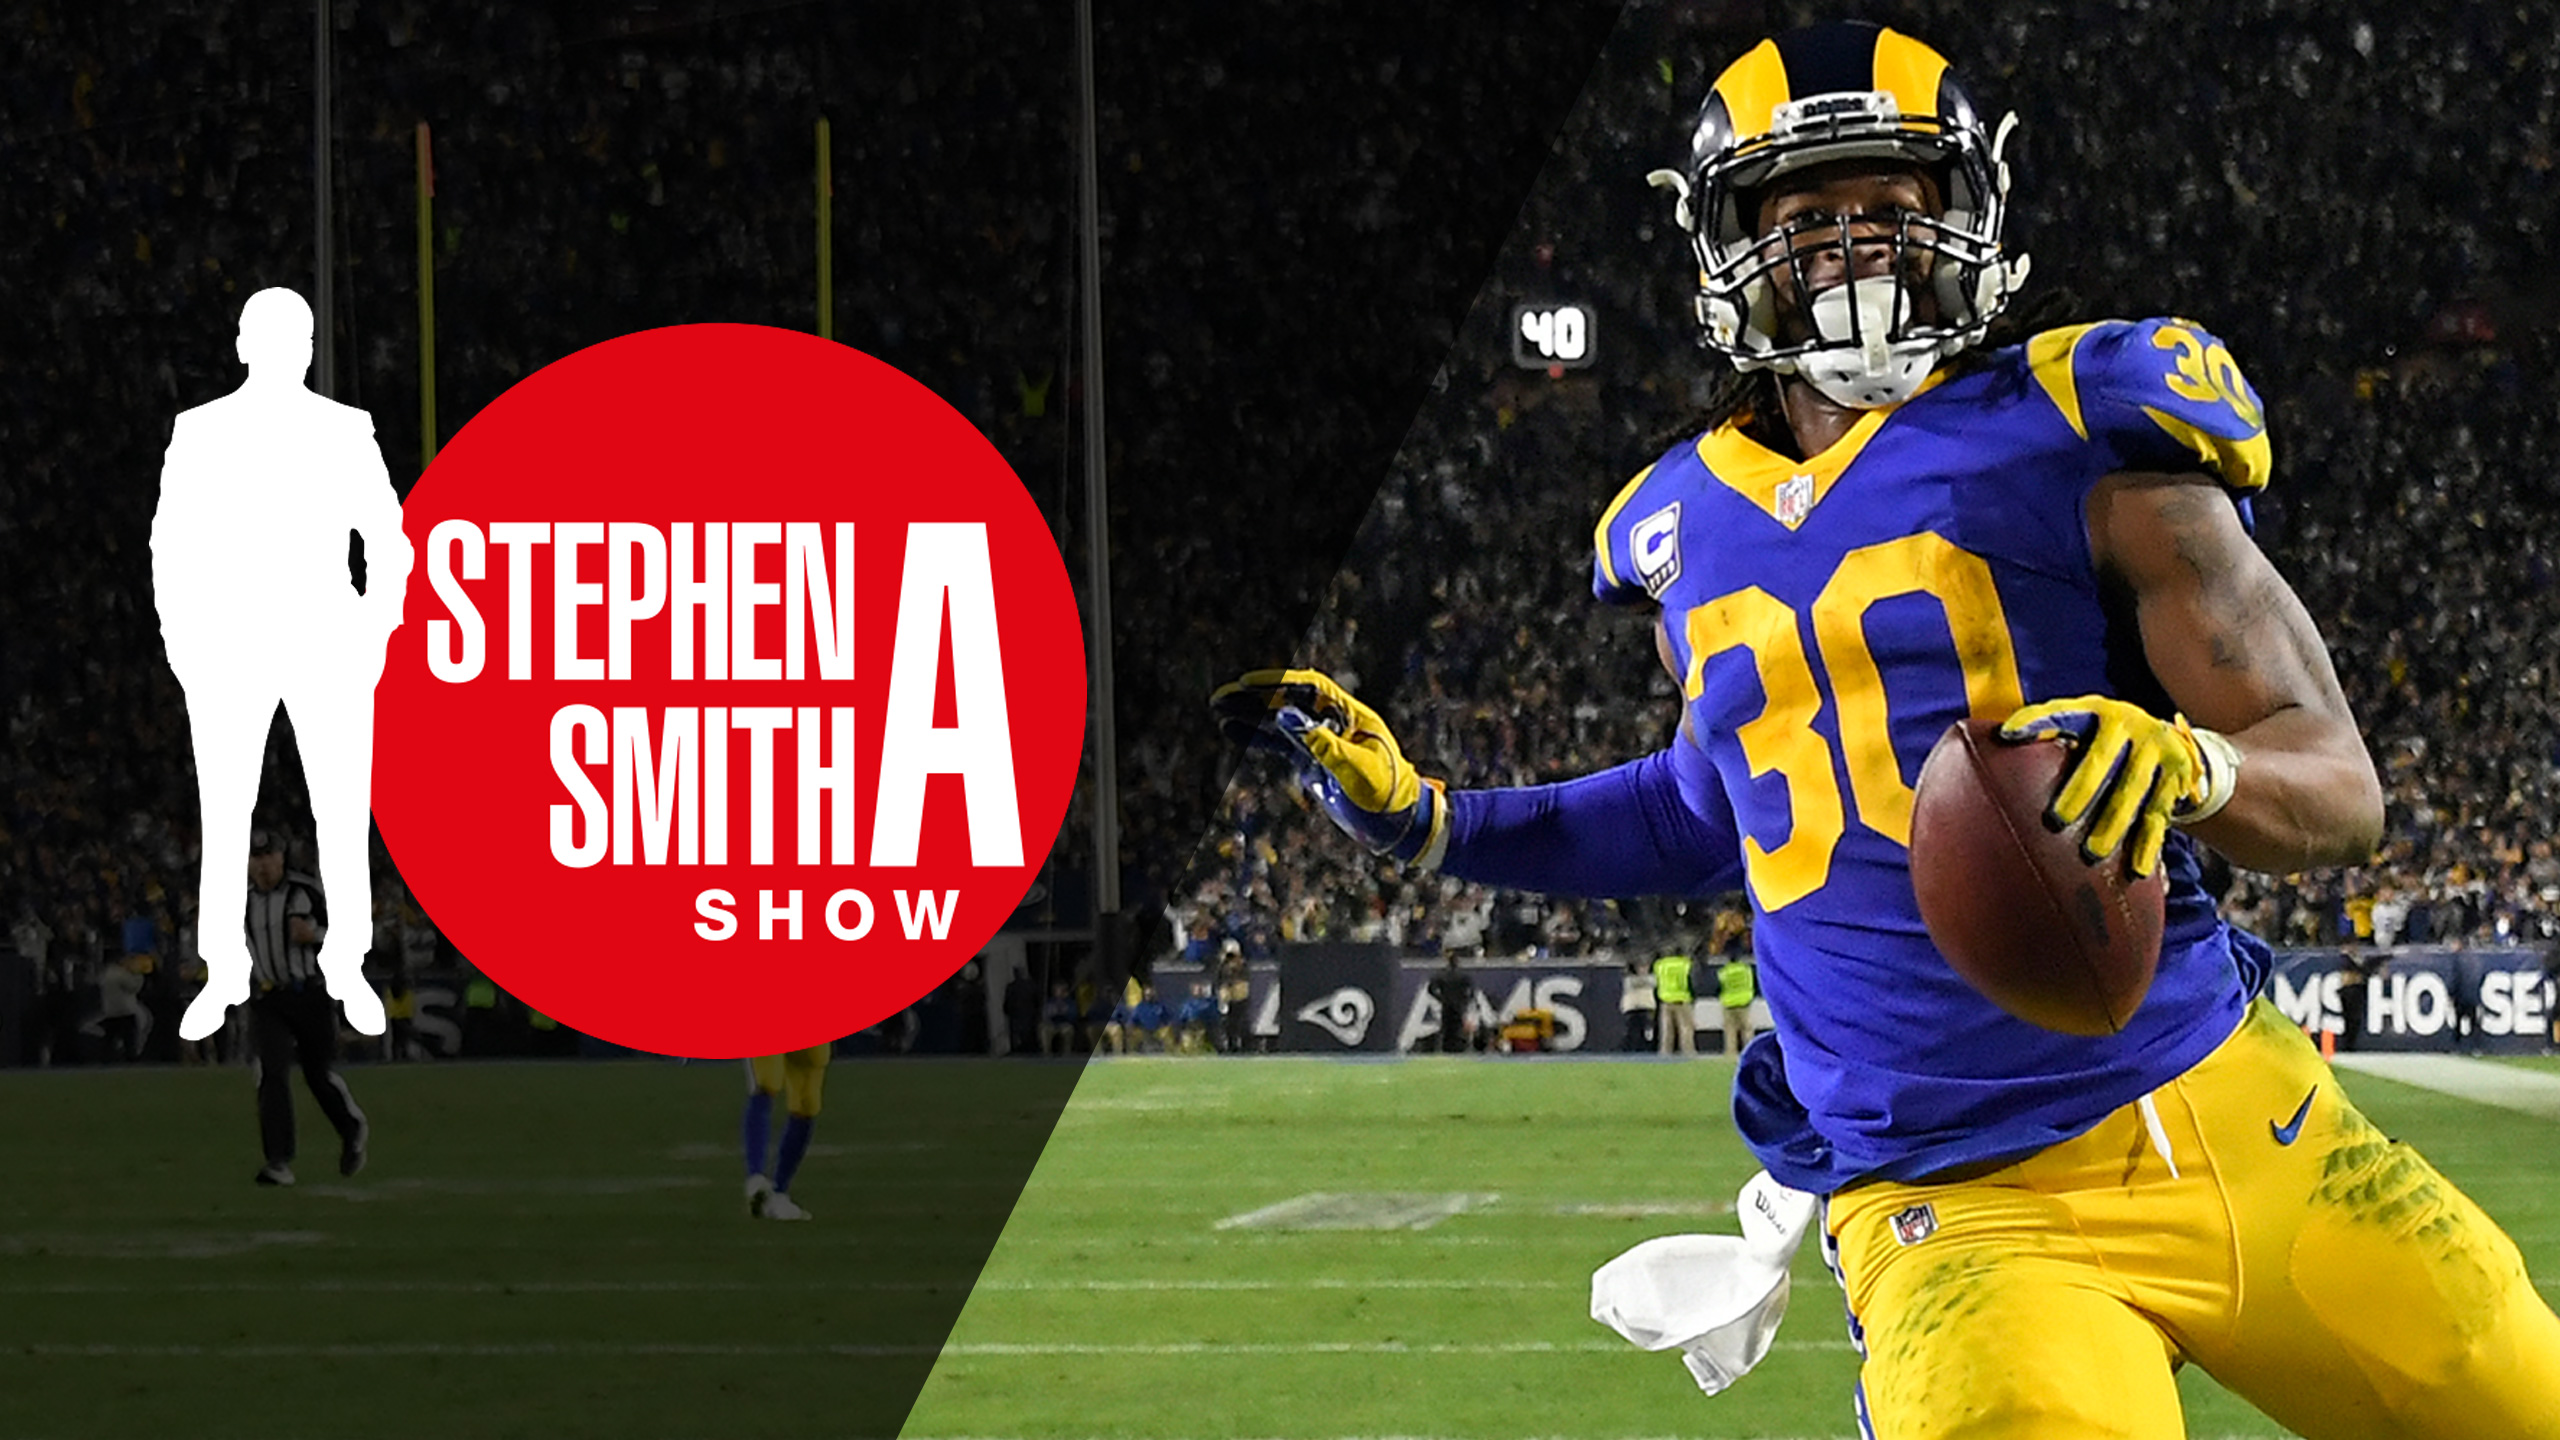 Fri, 1/18 - The Stephen A. Smith Show